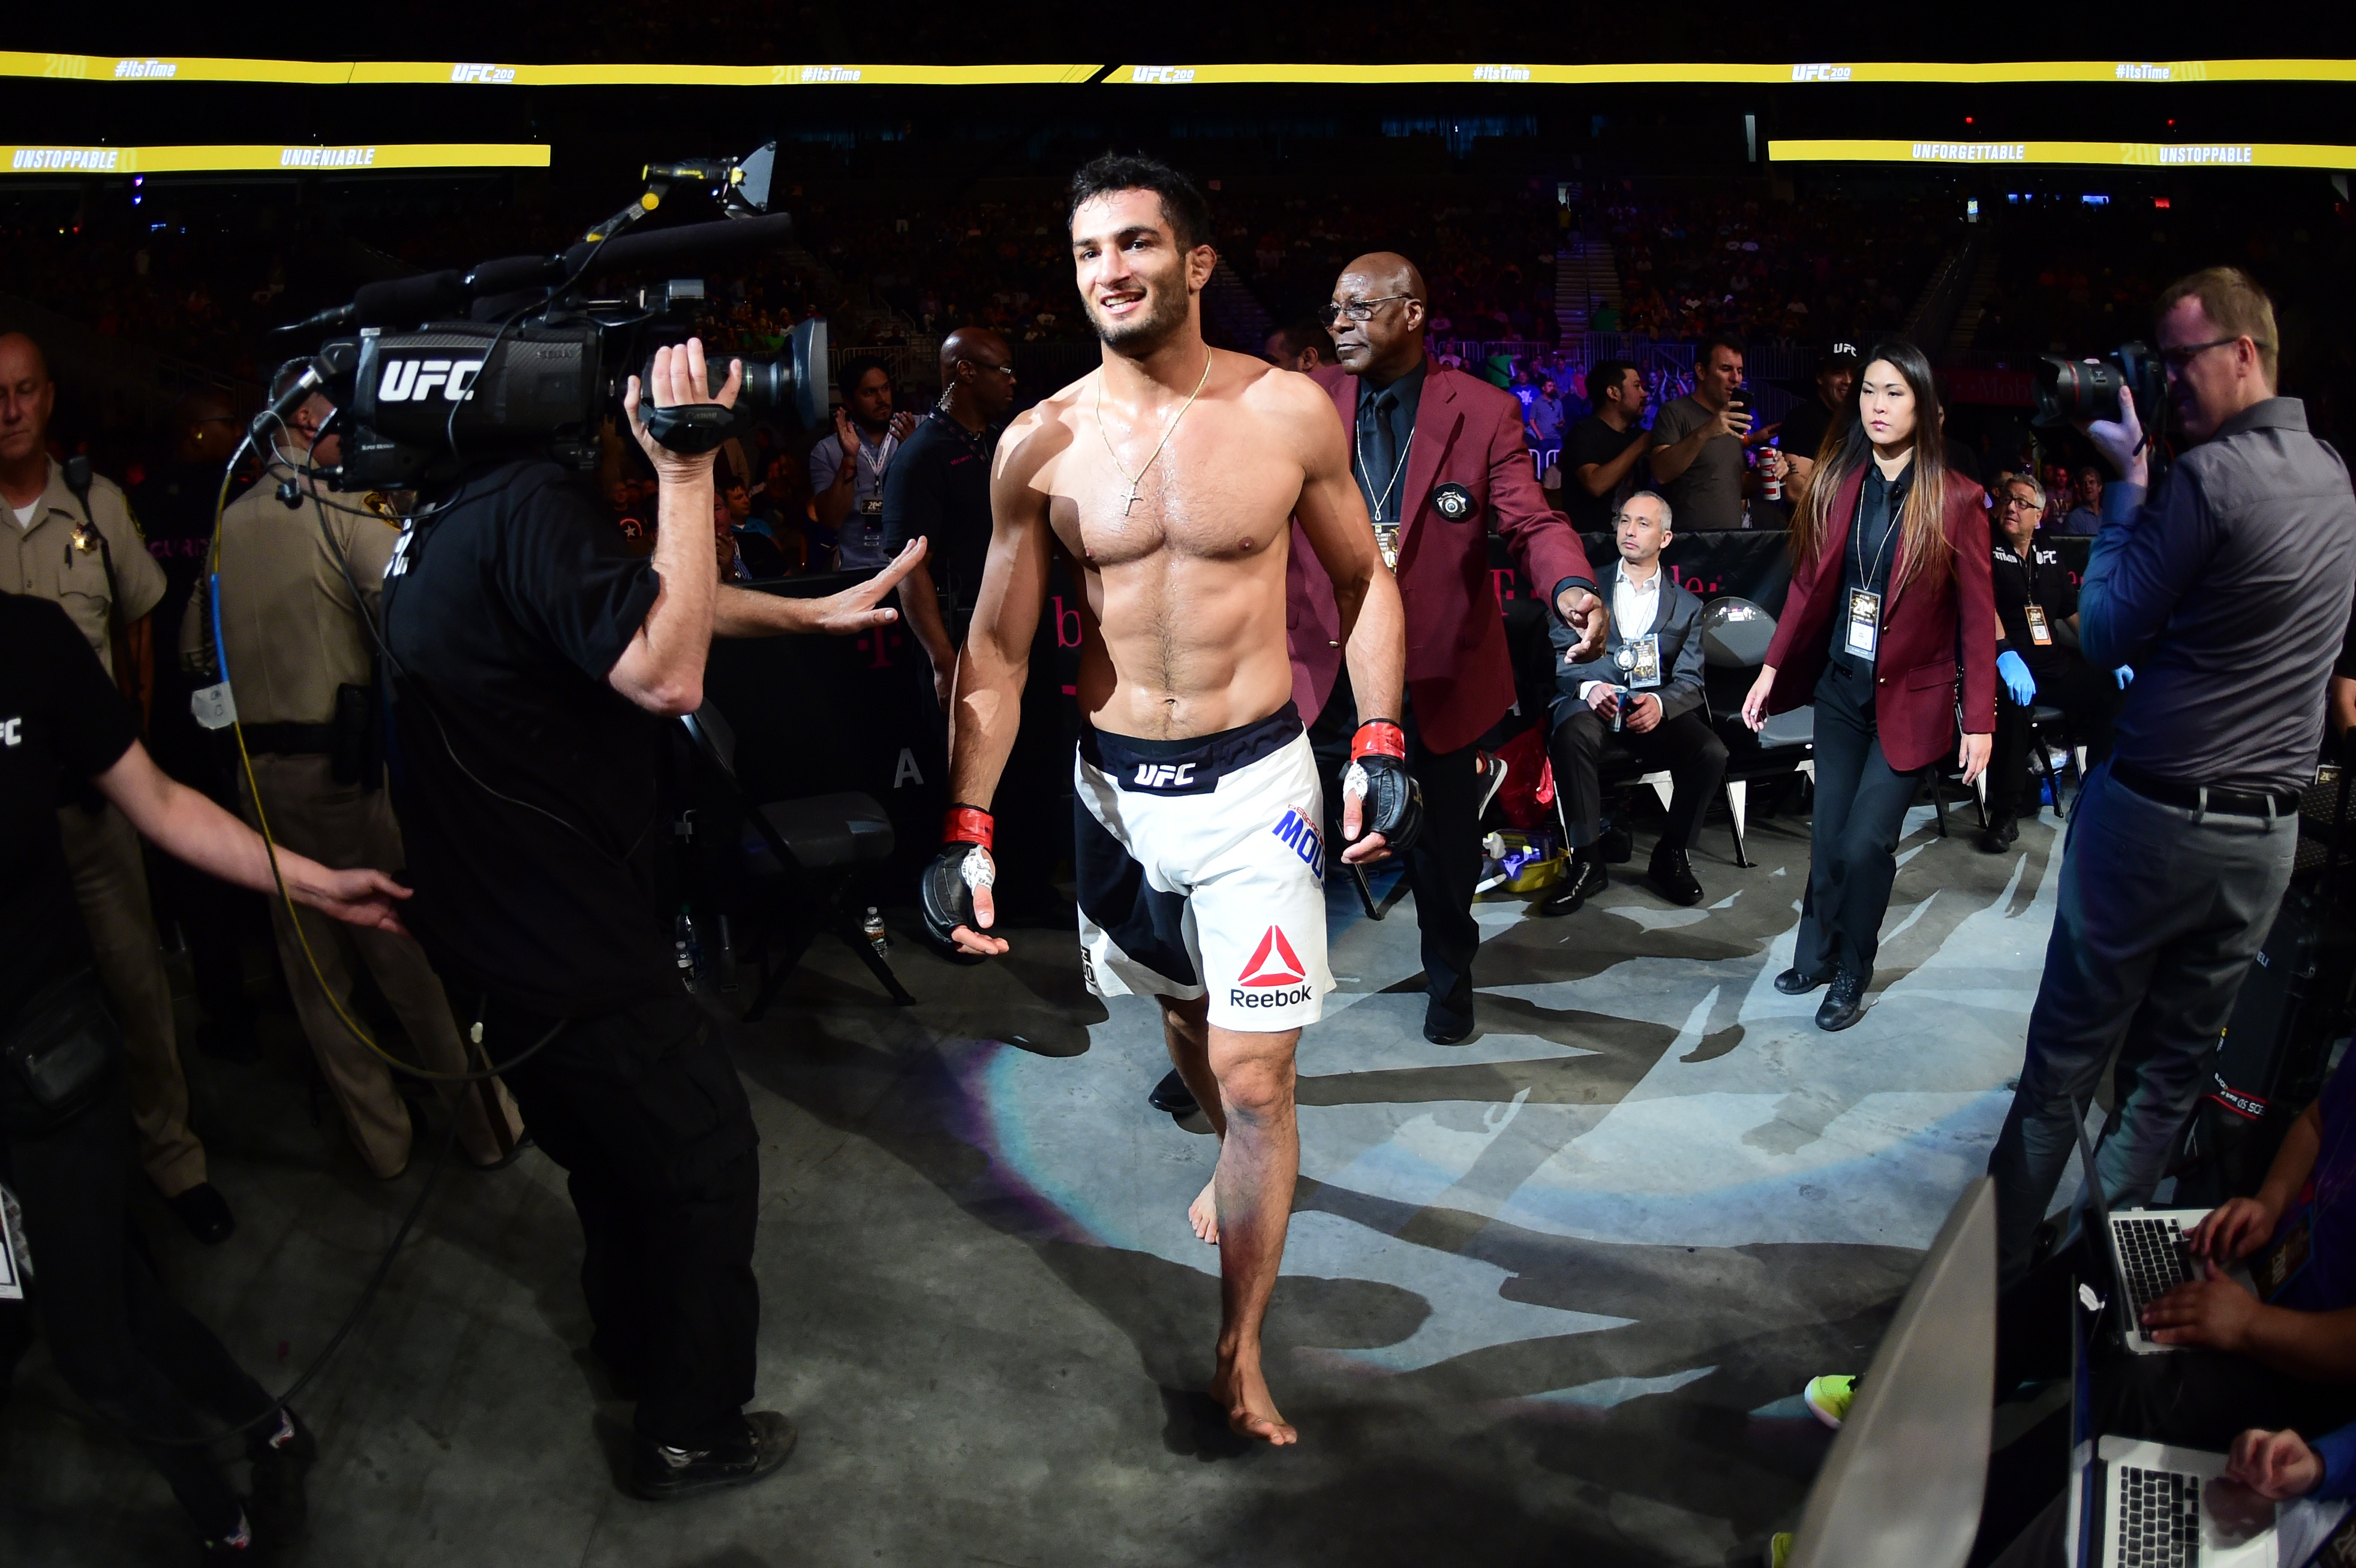 LAS VEGAS, NV - JULY 09: Gegard Mousasi of The Netherlands exits the Octagon after defeating Thiago Santos of Brazil in their middleweight bout during the UFC 200 event on July 9, 2016 at T-Mobile Arena in Las Vegas, Nevada. (Photo by Harry How/Zuffa LLC/Zuffa LLC via Getty Images)